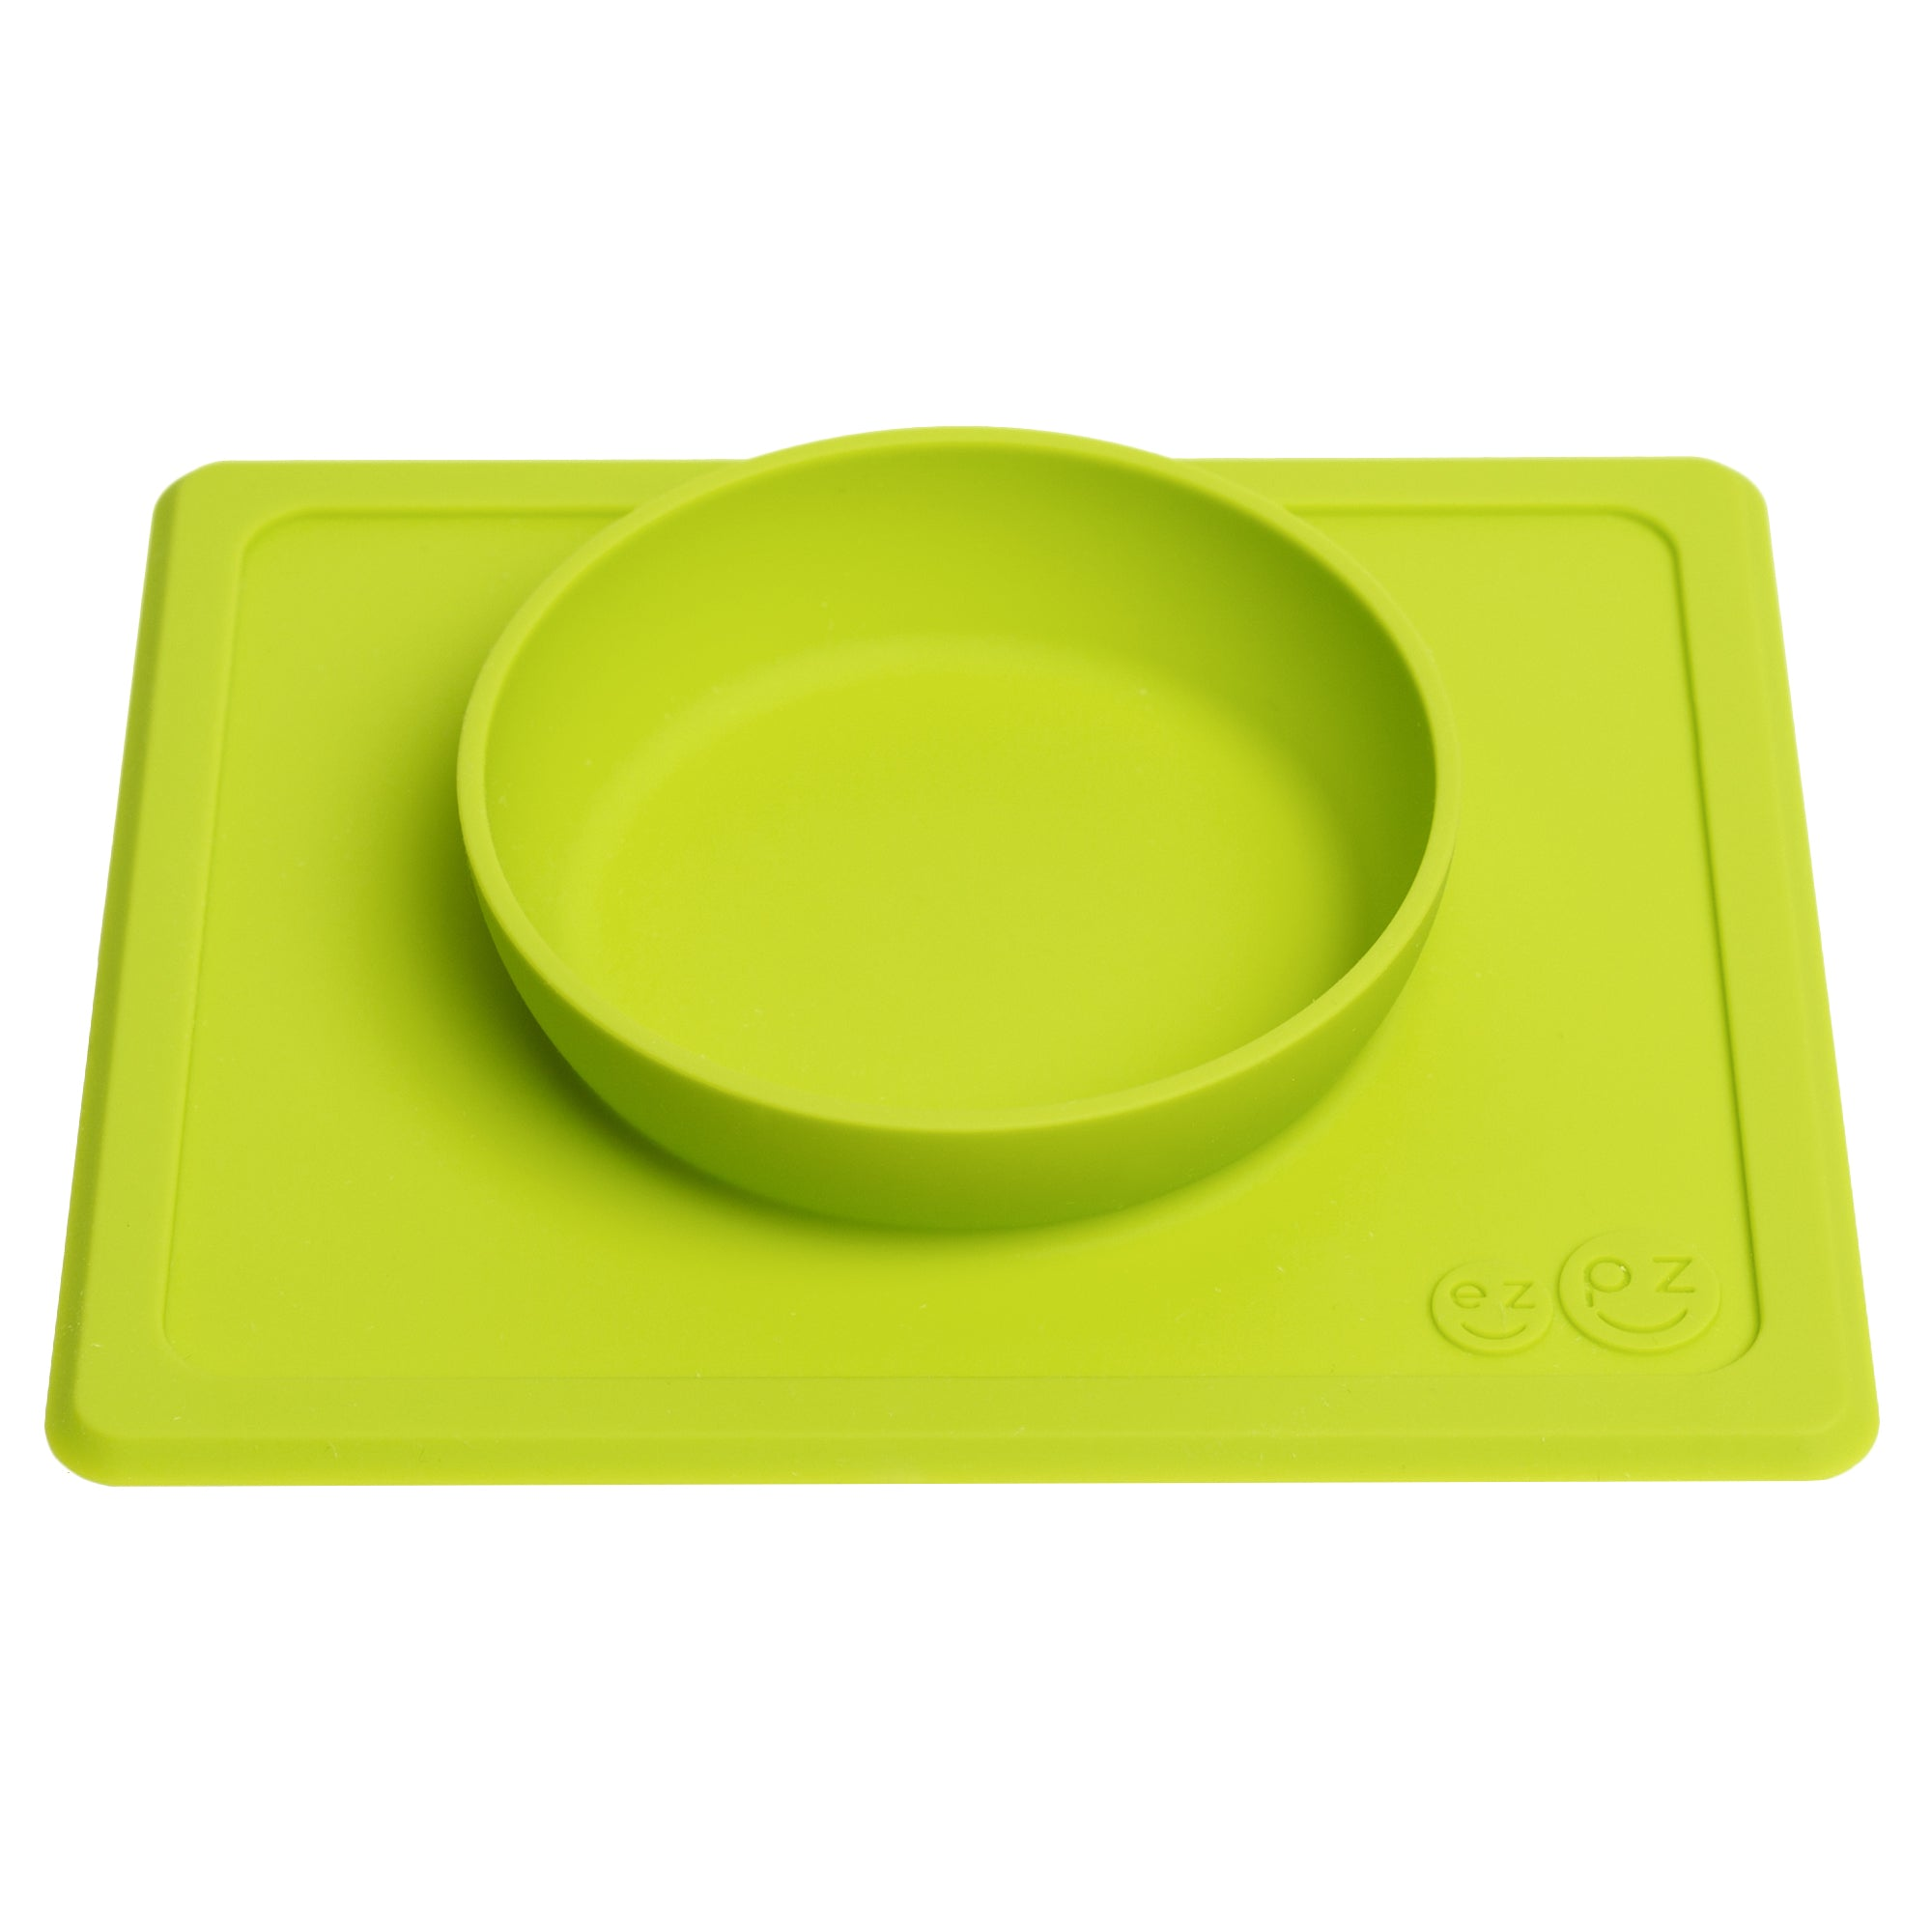 Mini Bowl - Verde Limon-Natugo